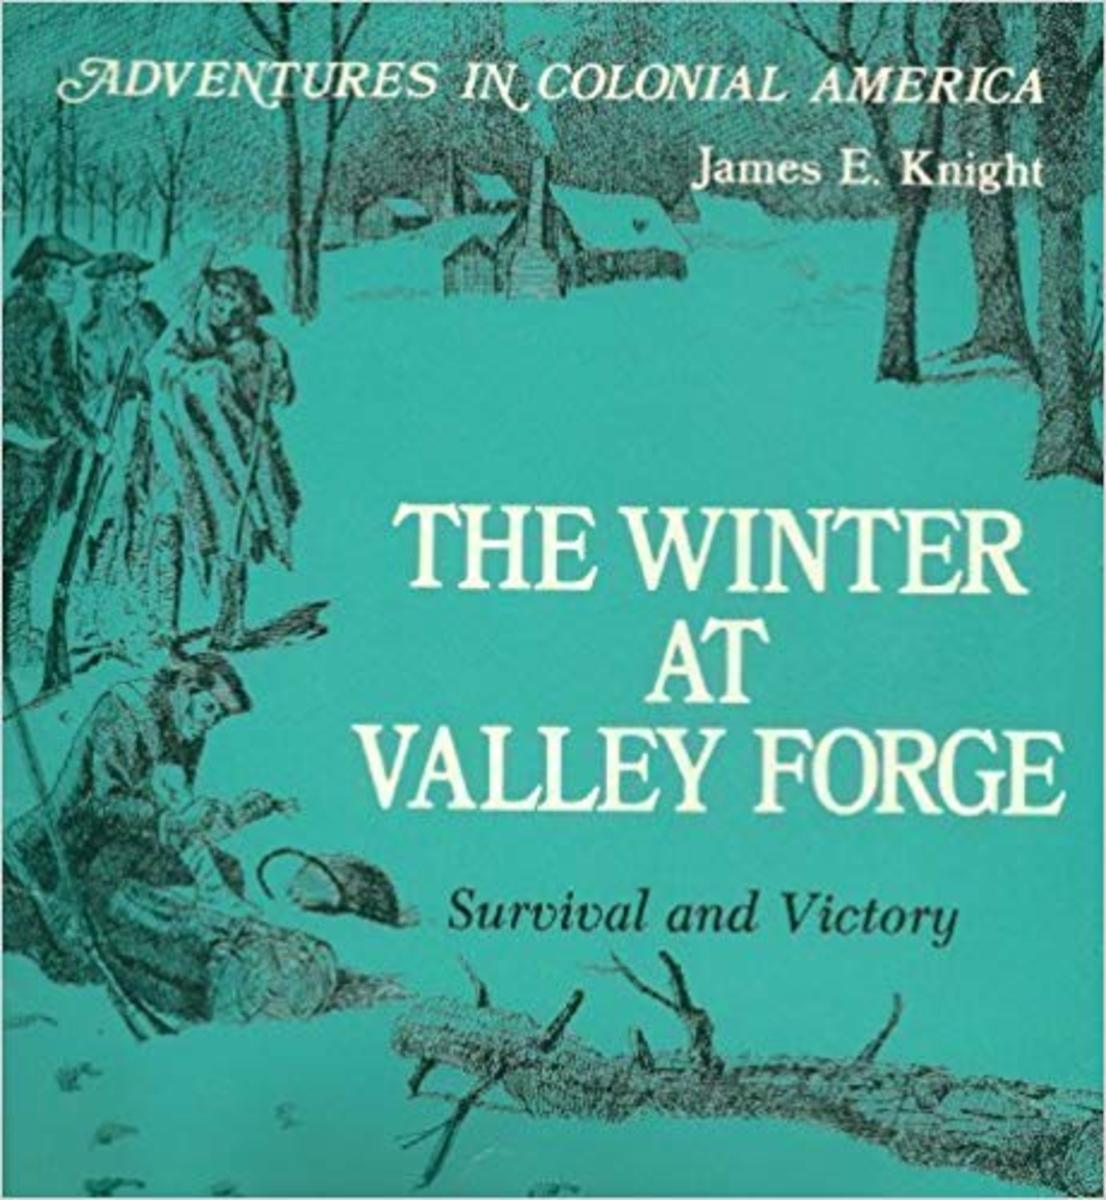 The Winter at Valley Forge: Survival and Victory (Adventures in Colonial America) by James E. Knight